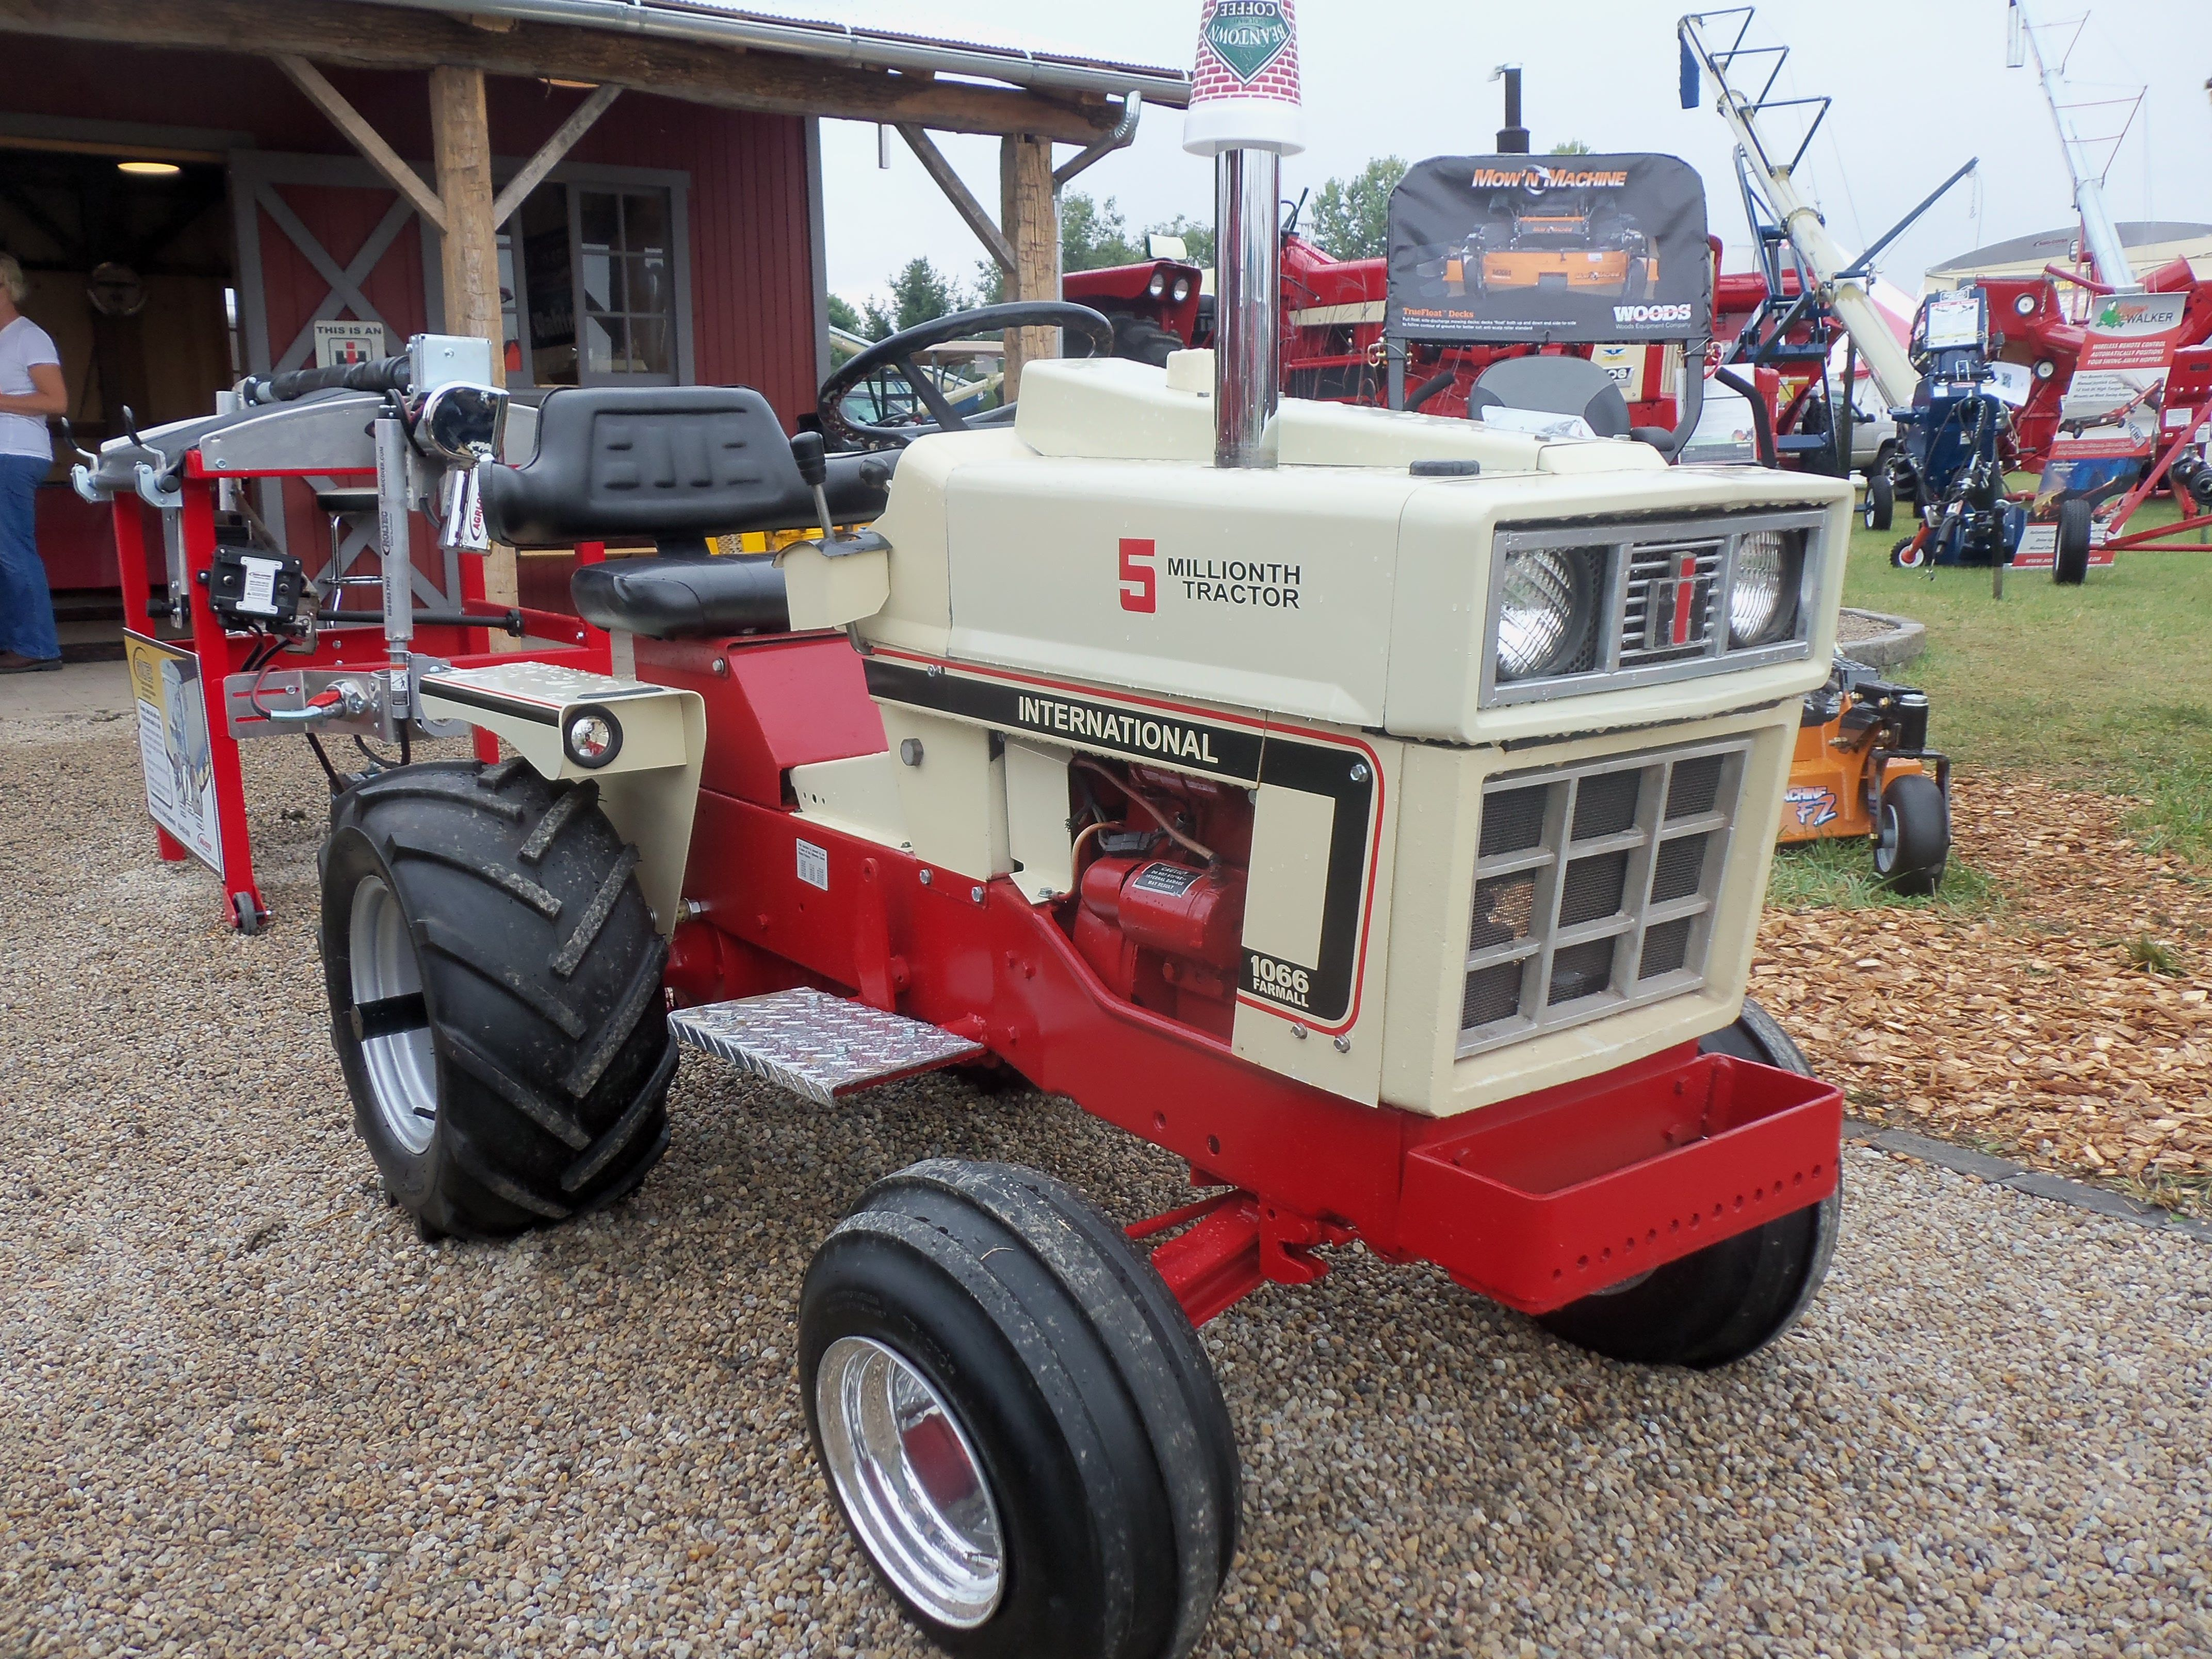 Nice little International garden tractor InternationalFarmall